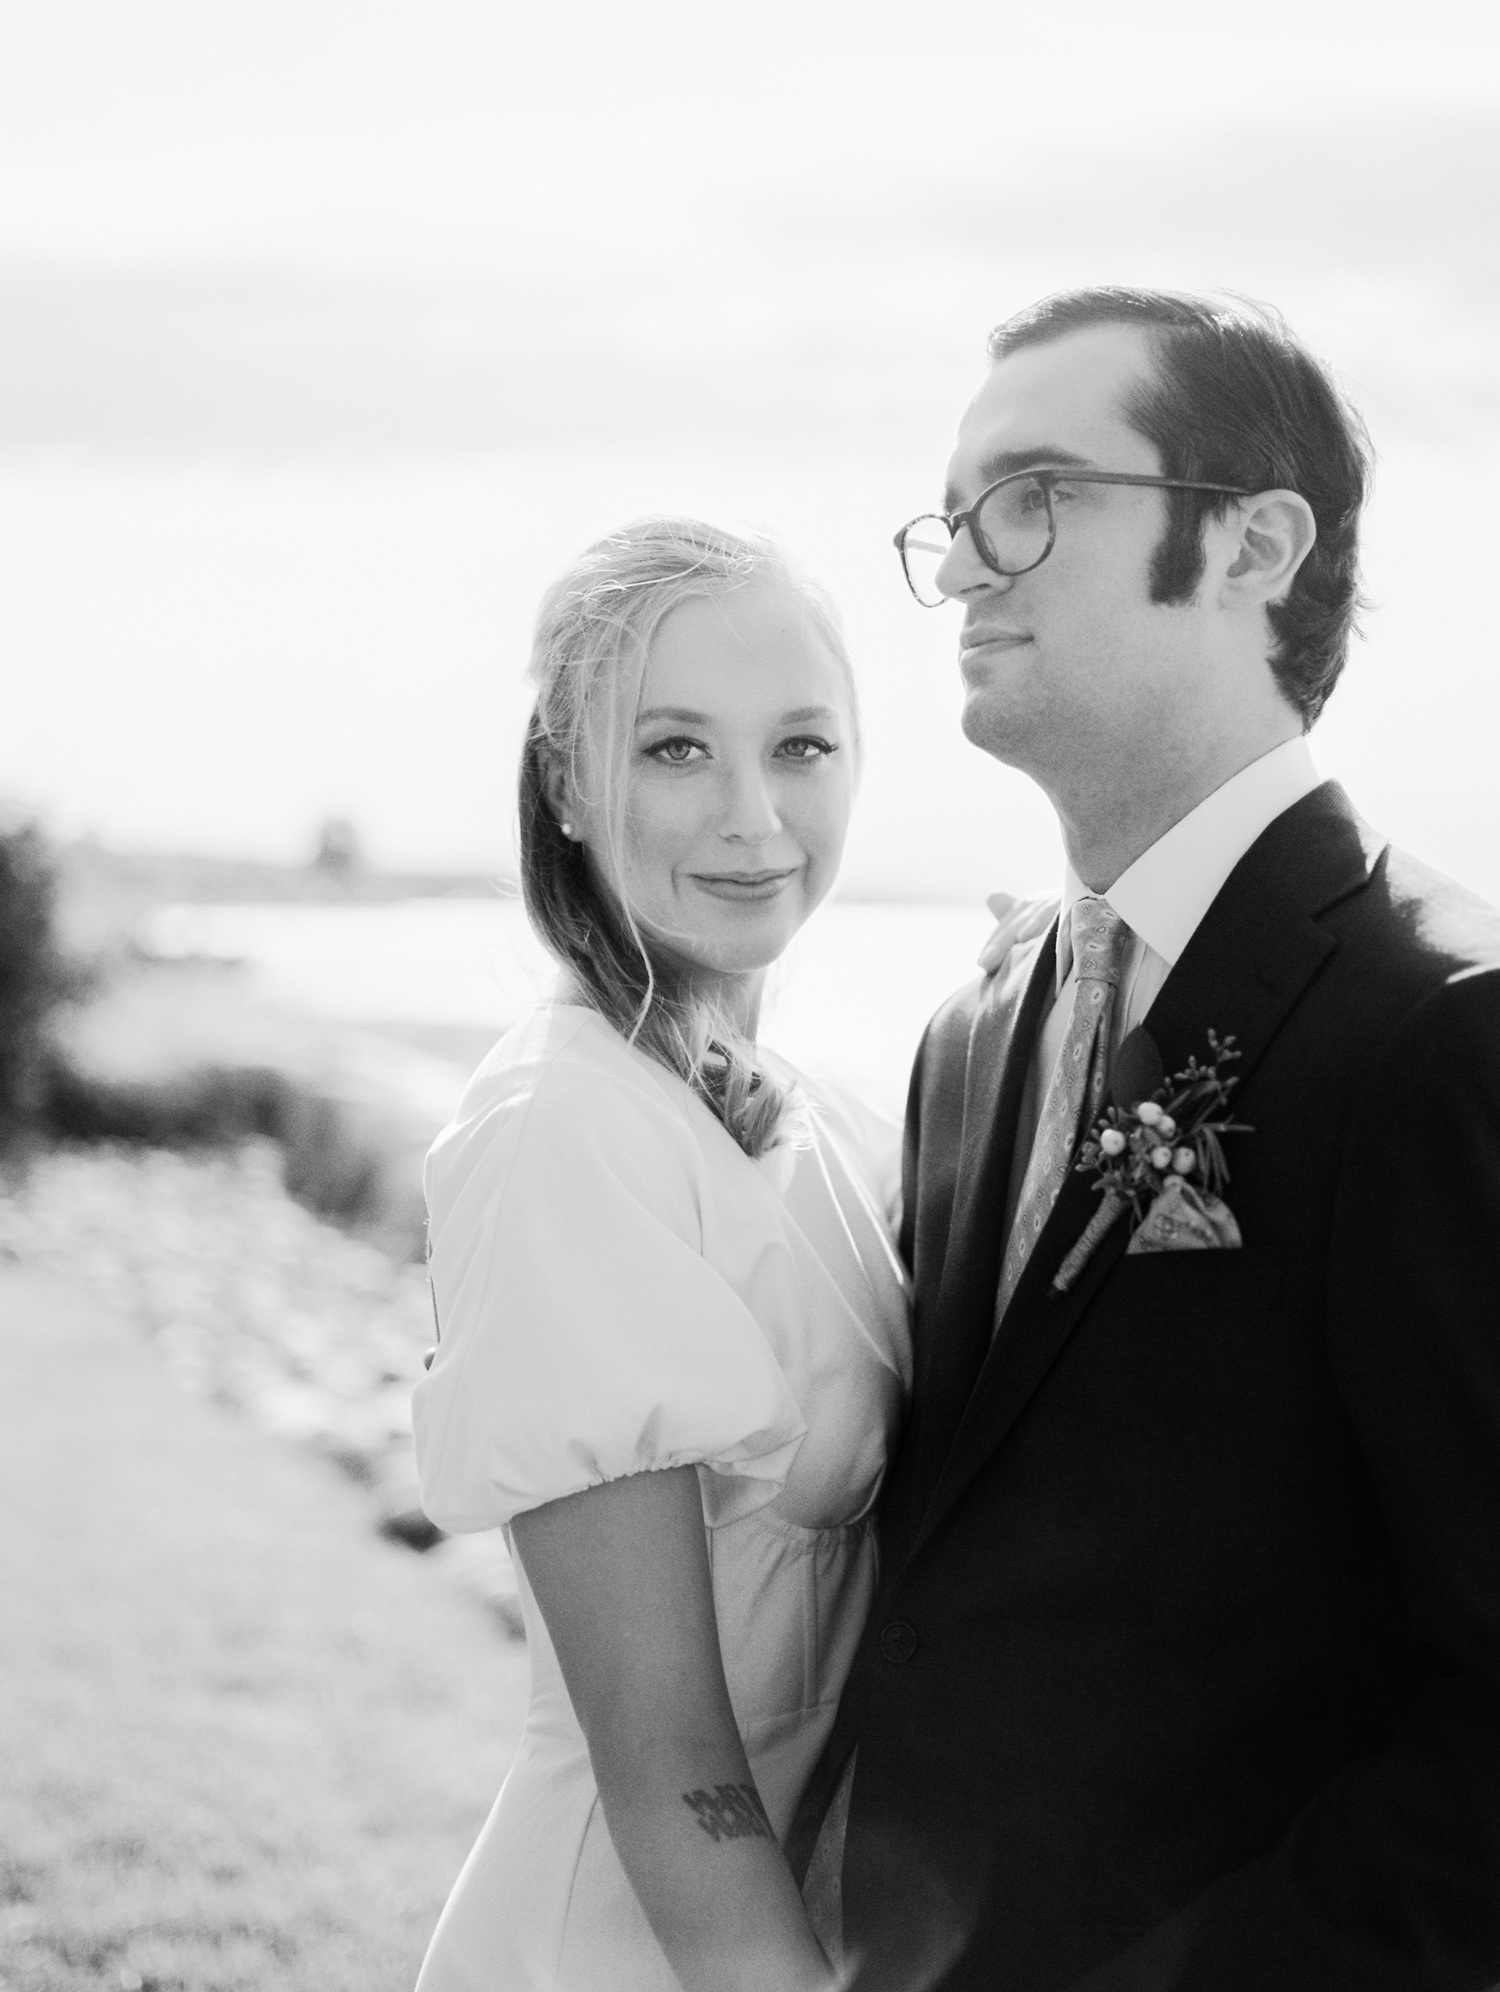 A bride with cat eyeliner wedding makeup looks at the camera during their Petoskey, Michigan wedding